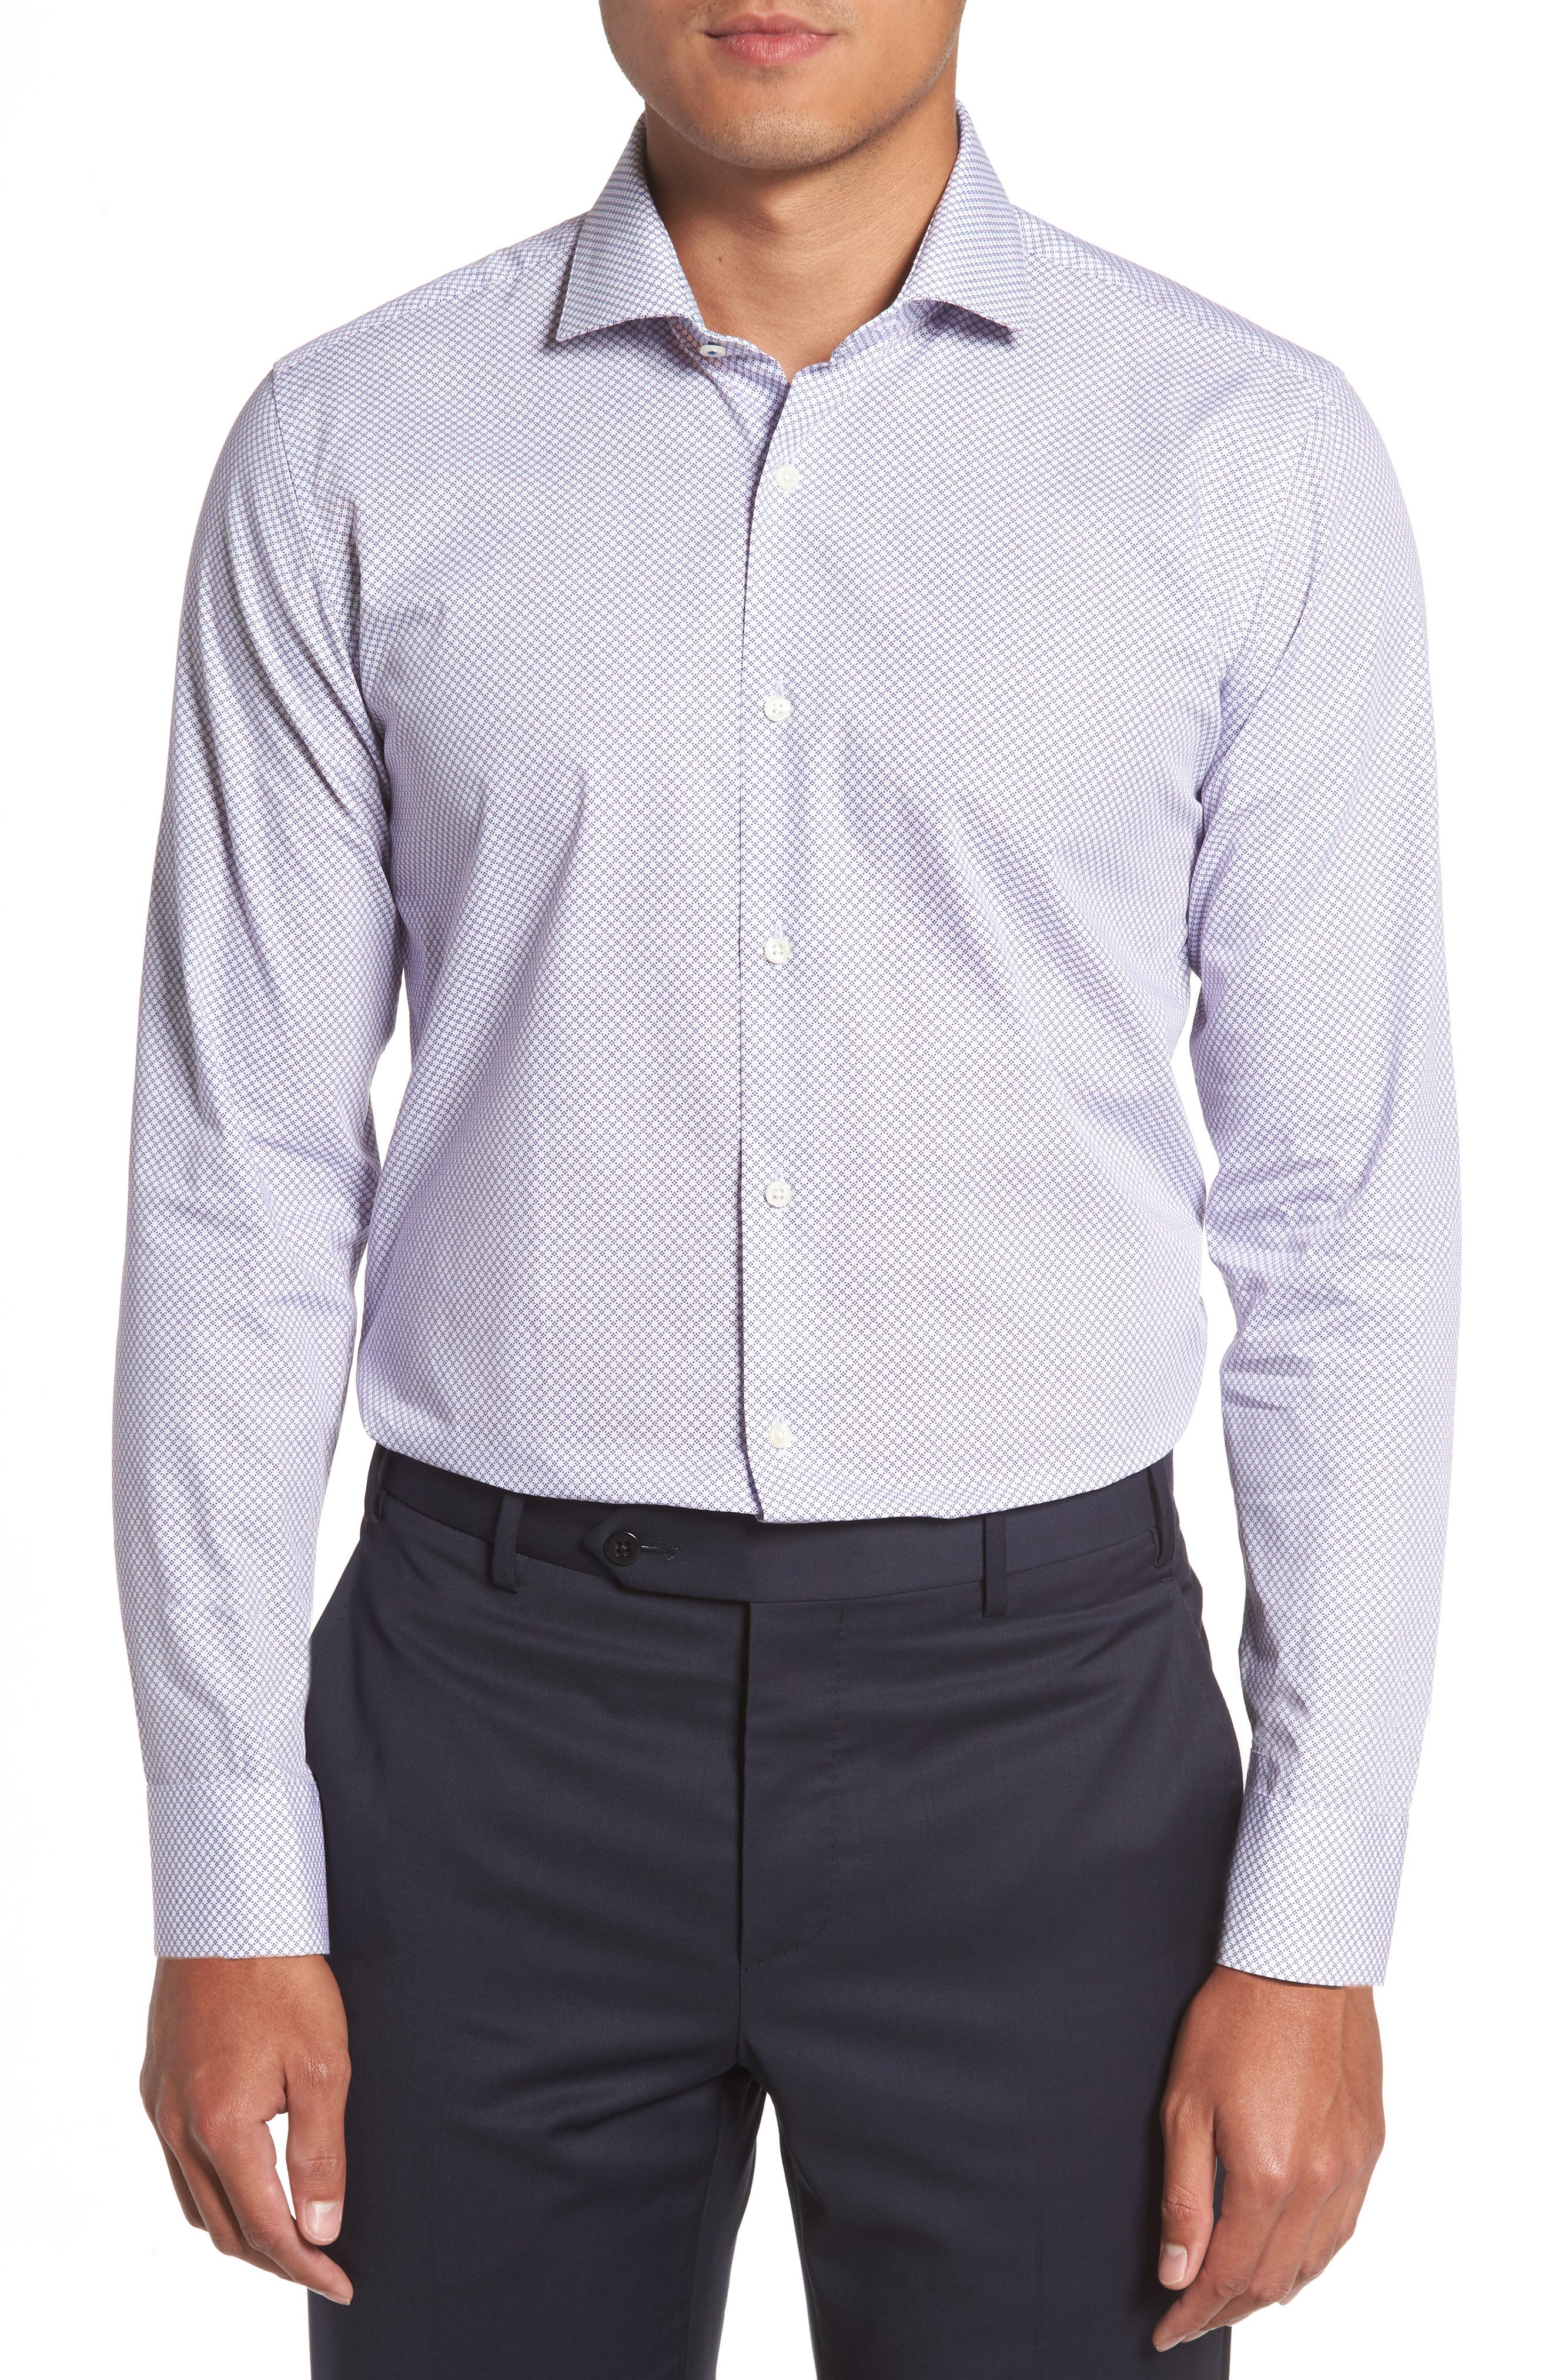 Endurance Sterling Trim Fit Dress Shirt,                             Main thumbnail 2, color,